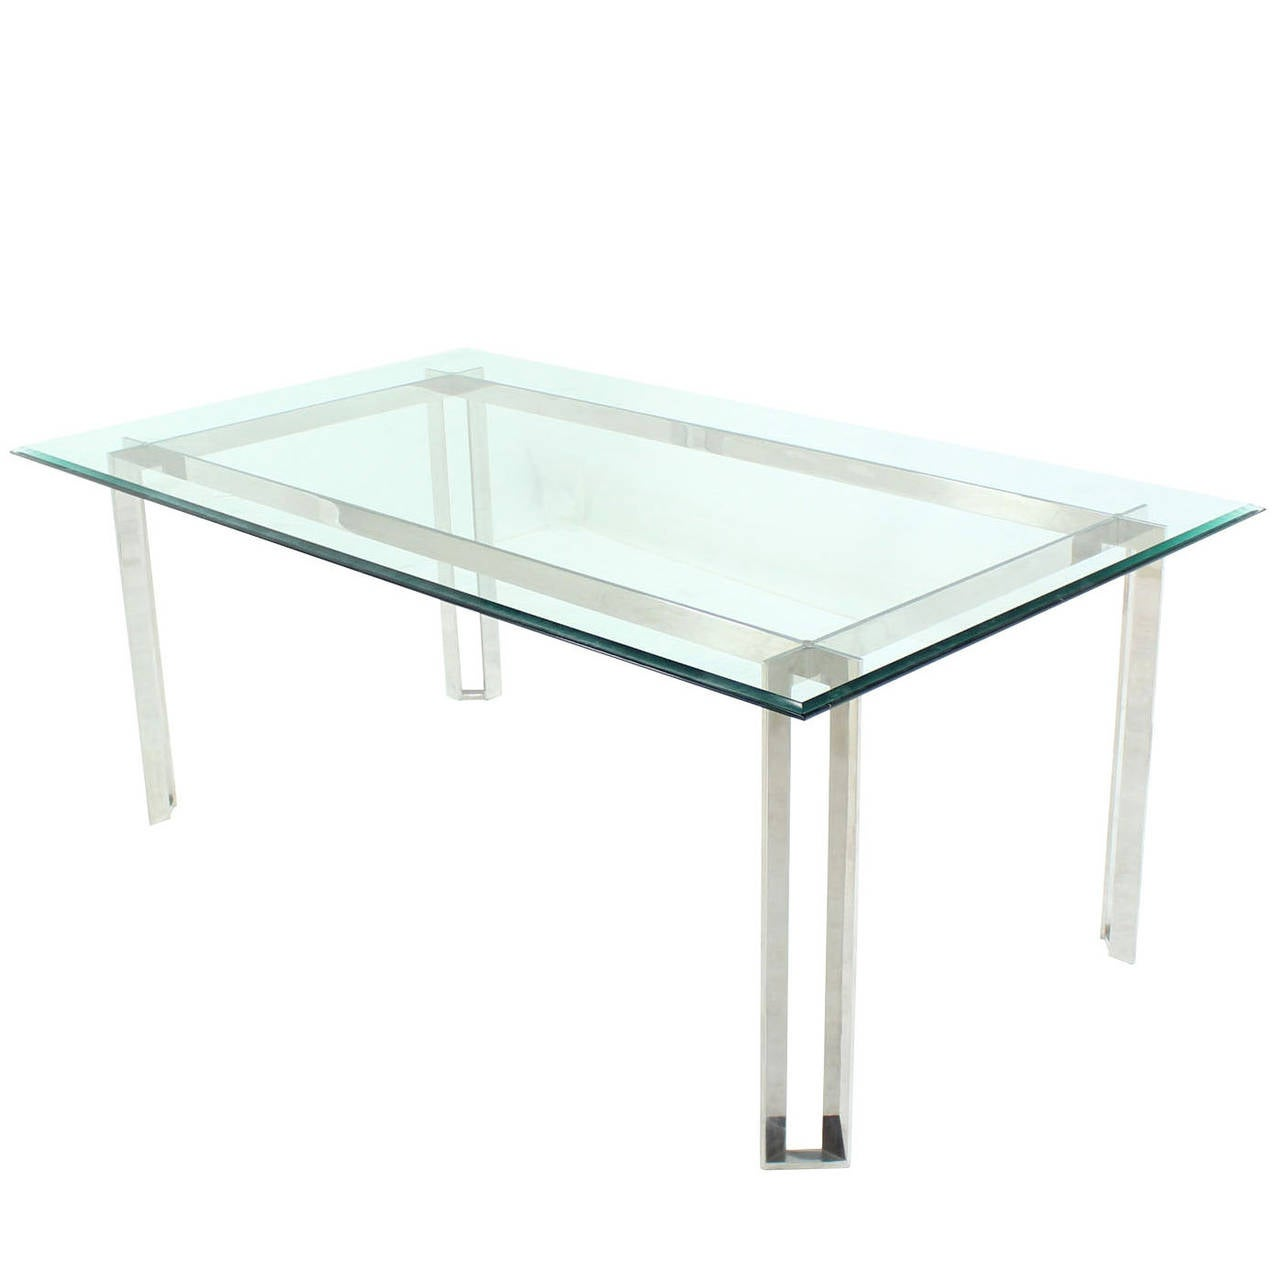 Charmant Polished Stainless Steel And Thick Glass Top Dining Room Table For Sale